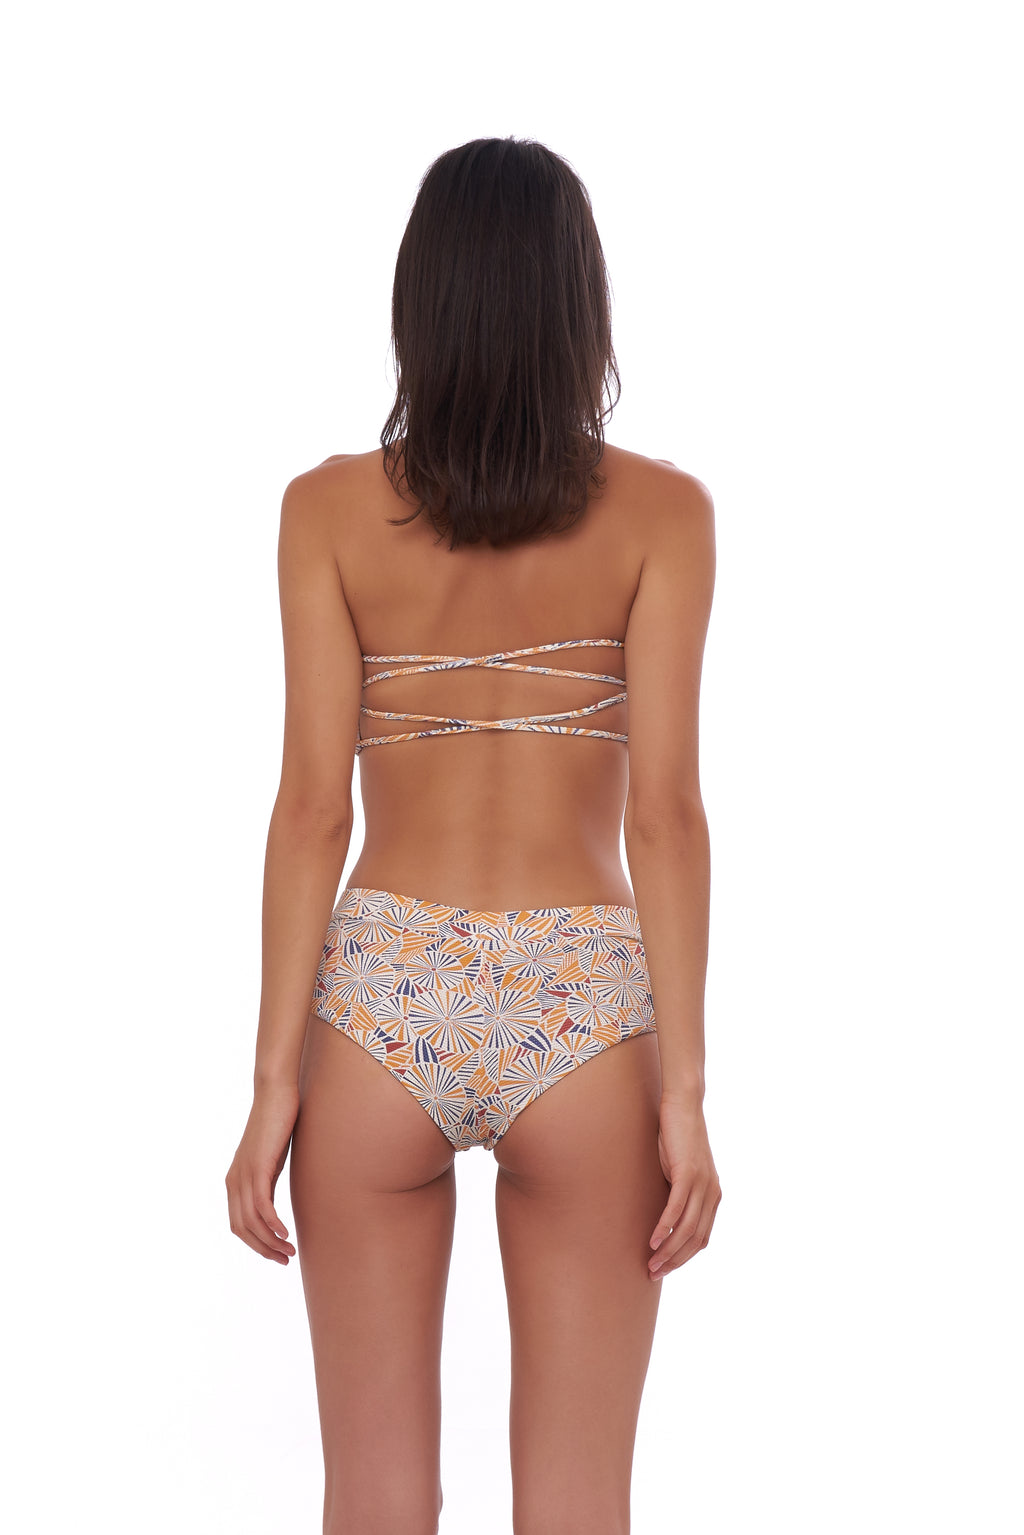 Storm Swimwear - Stromboli - Bikini Bottom in Wild Flowers Print